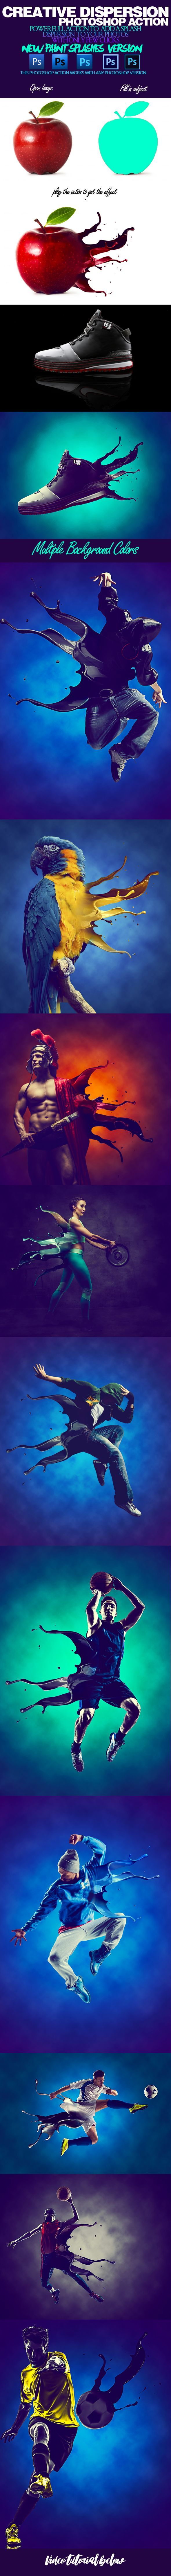 3D Splashes V1.1 Dispersion Photoshop Action - Photo Effects Actions